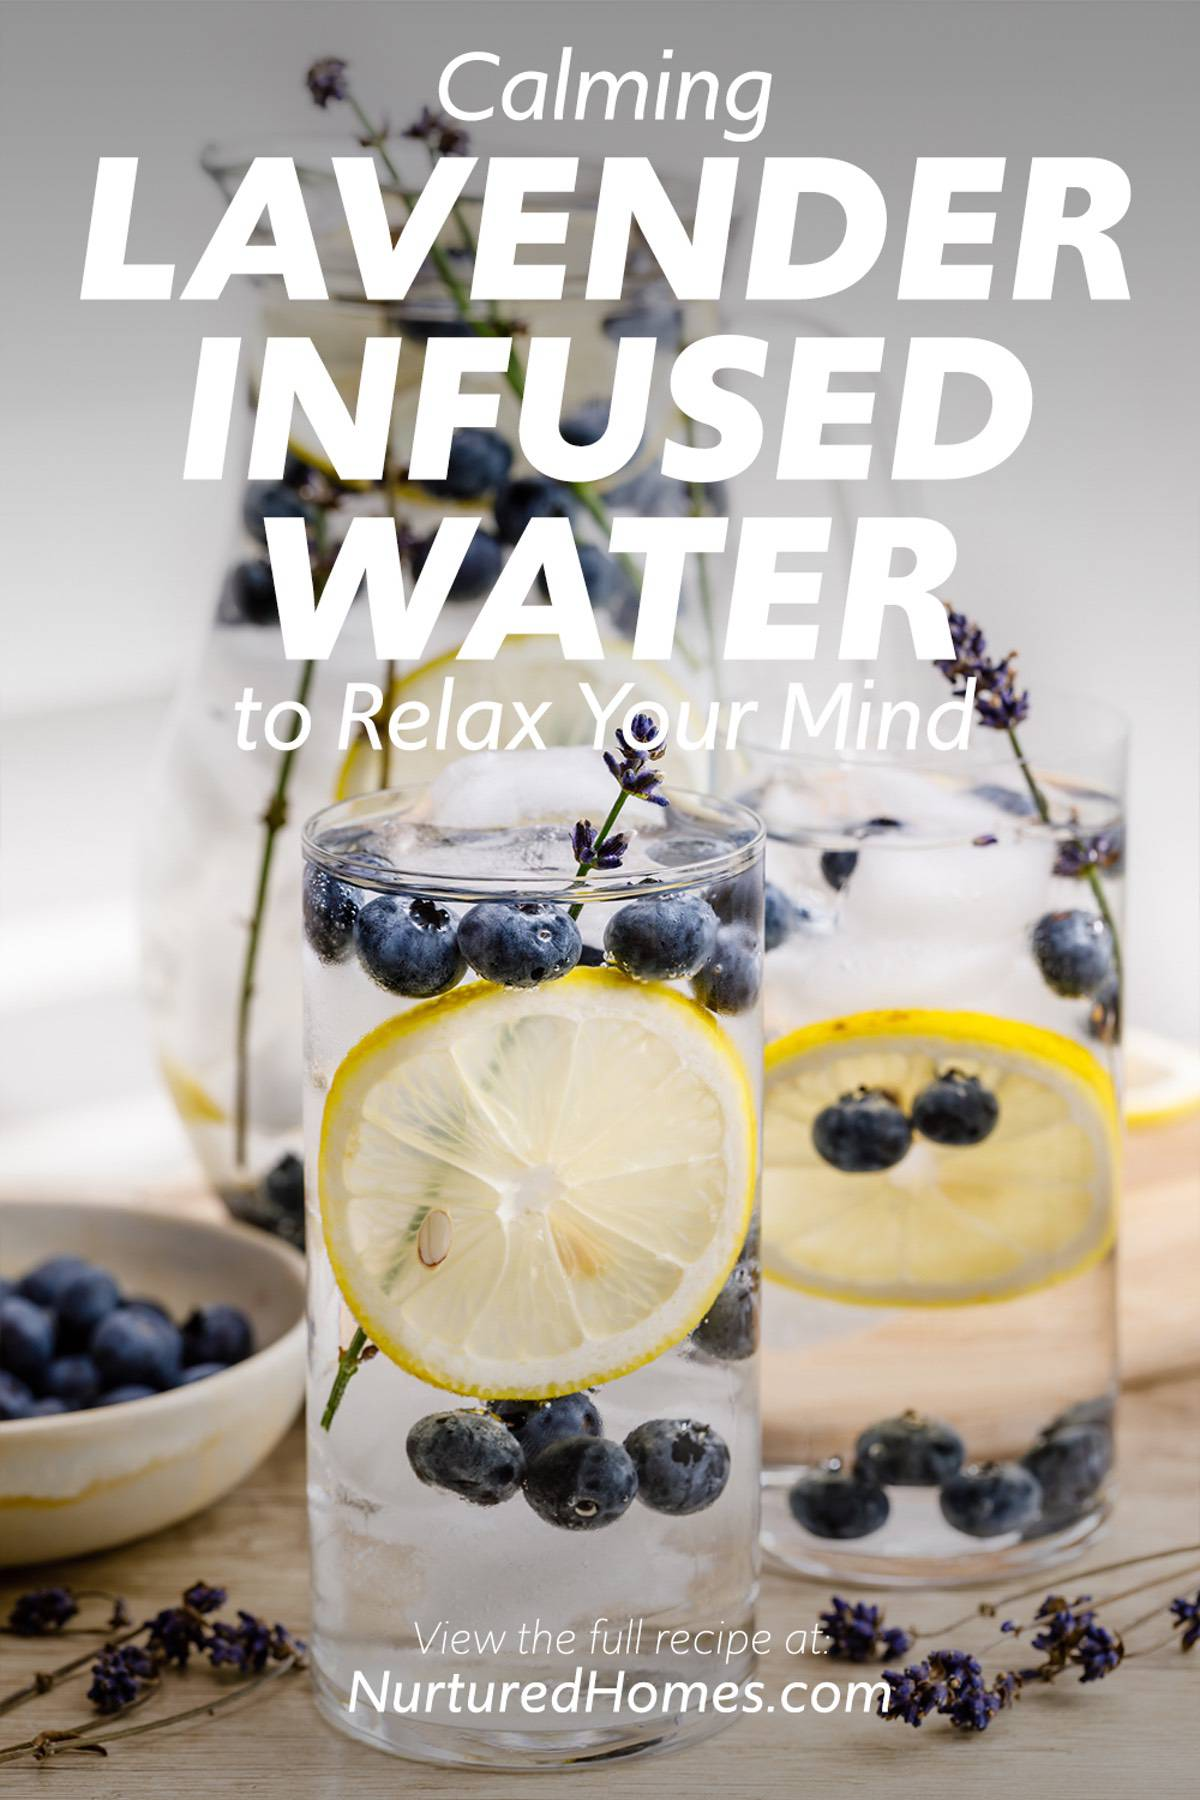 Calming Lavender-Infused Water Recipe to Relax Your Mind